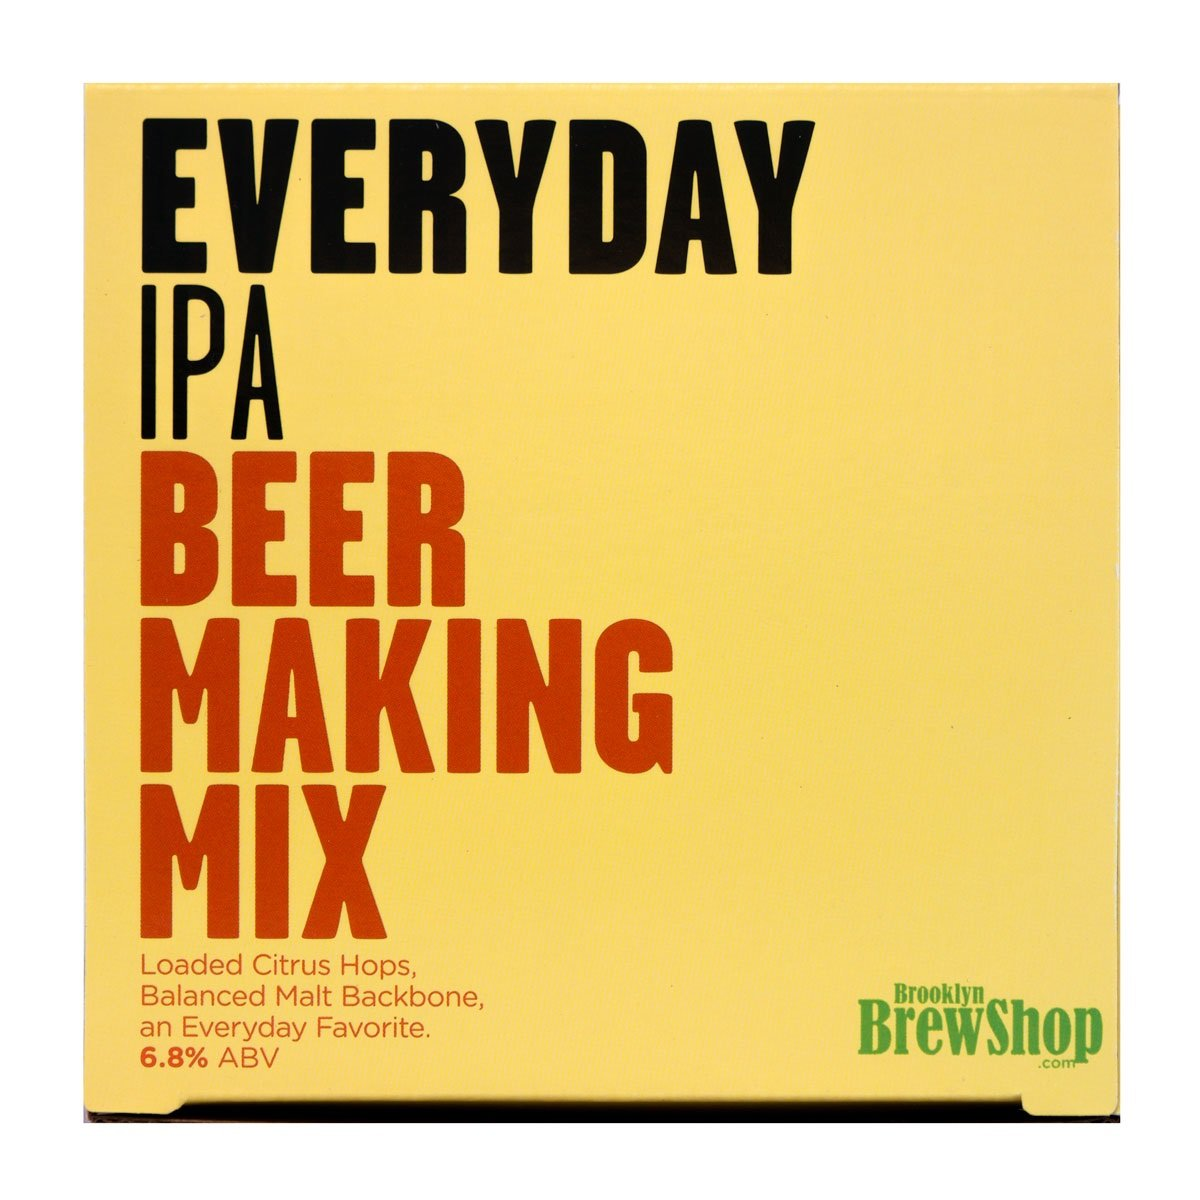 Brooklyn Brew Shop Everyday IPA Beer Making Mix: All-Grain Beer Making Mix Including Malted Barley, Hops And Yeast - Perfect For Brewing Craft Beer On Your Stove at Home by Brooklyn Brew Shop